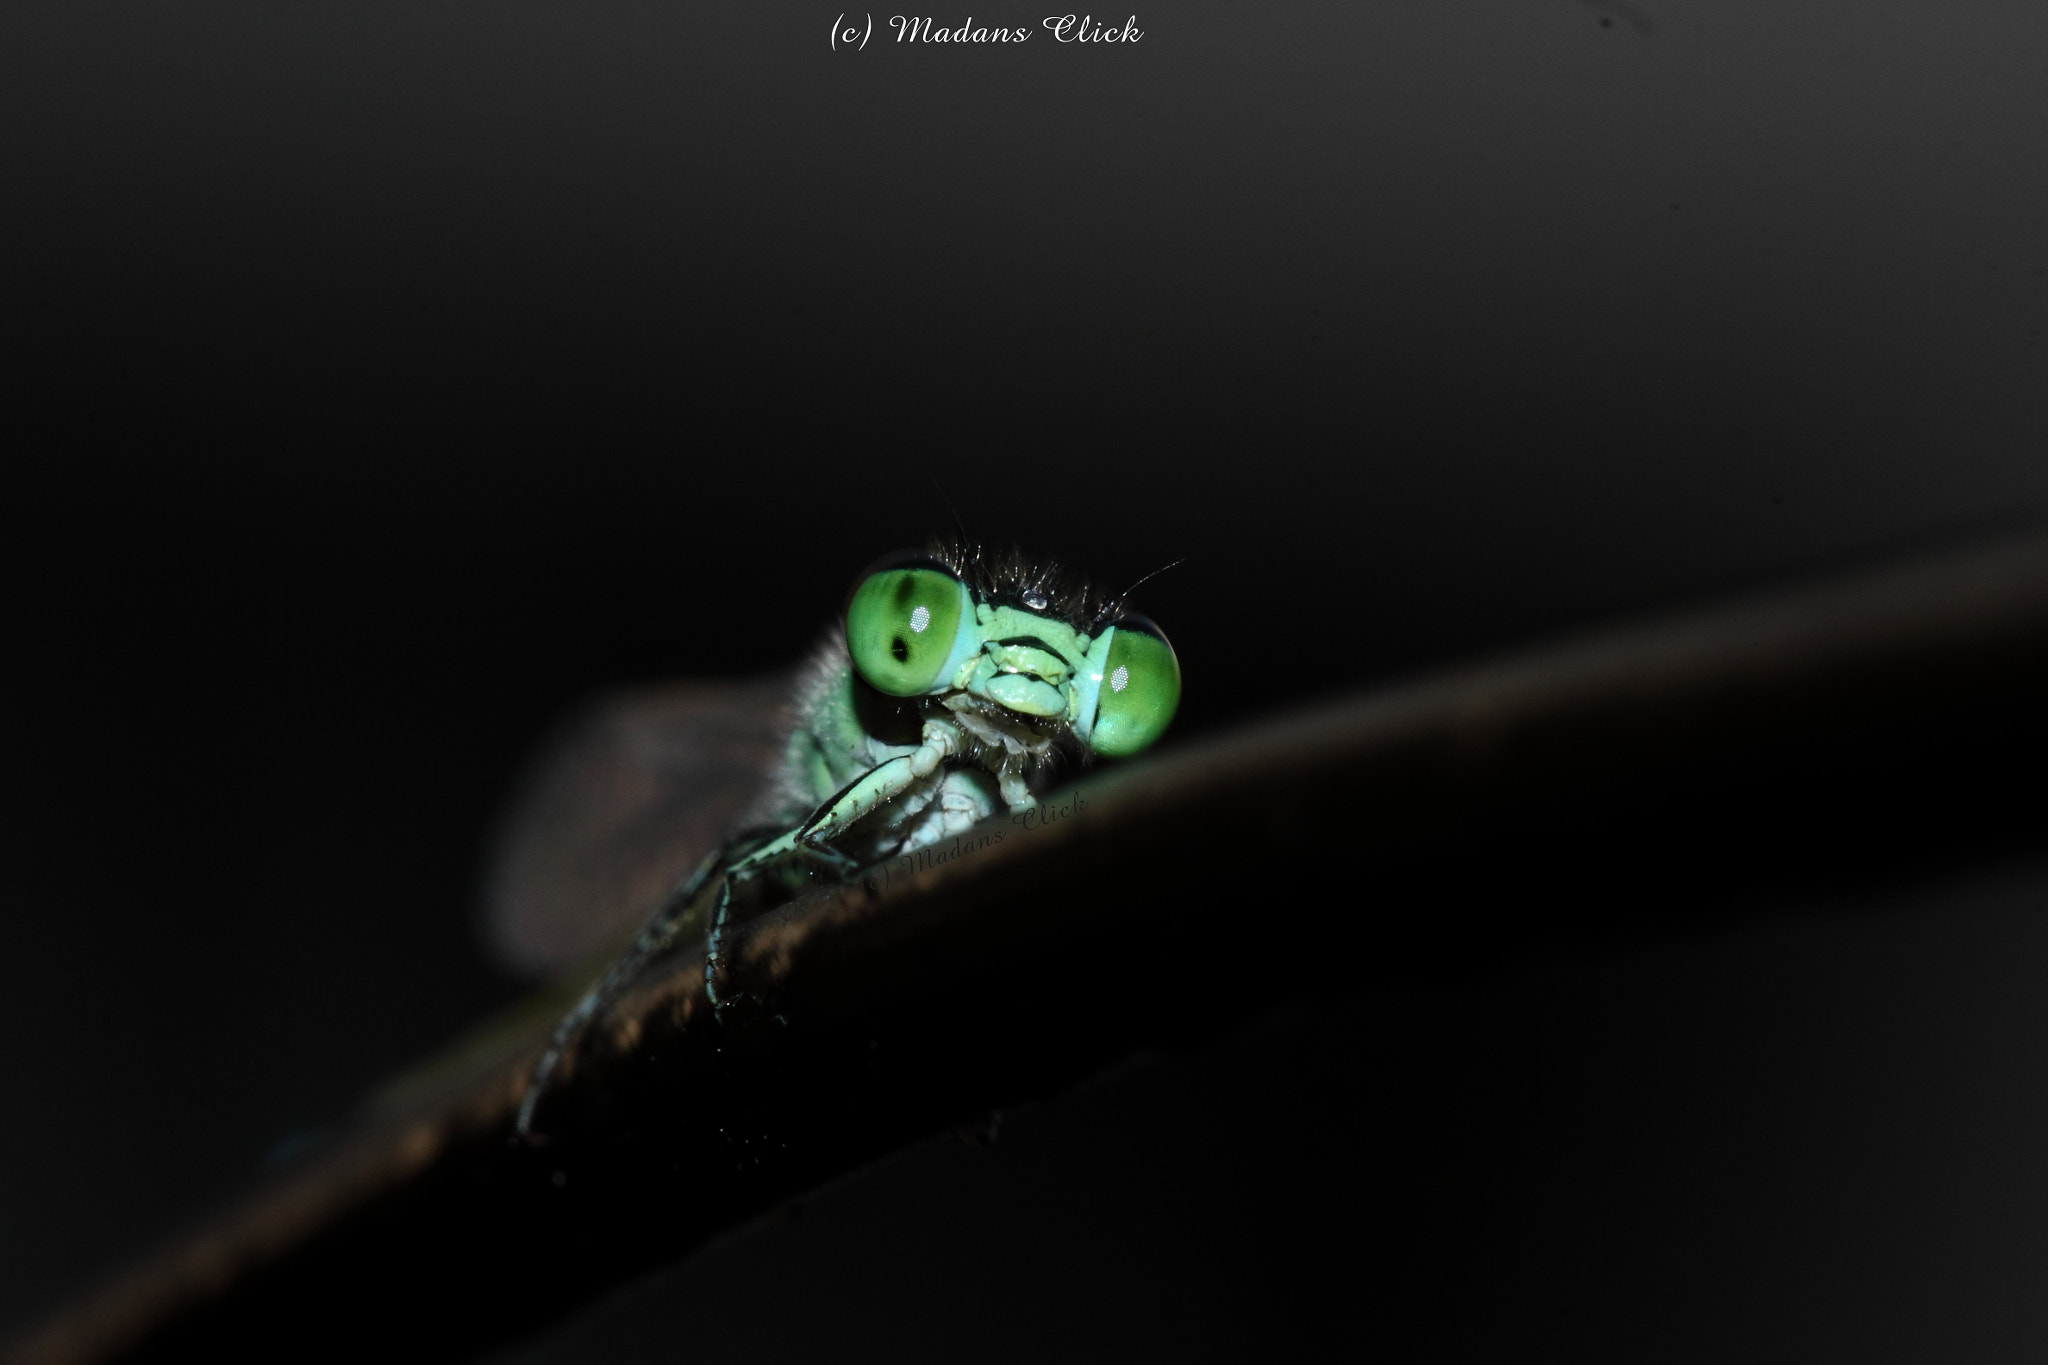 Photograph Peek a Boo with Damsel Fly by Madan GC on 500px